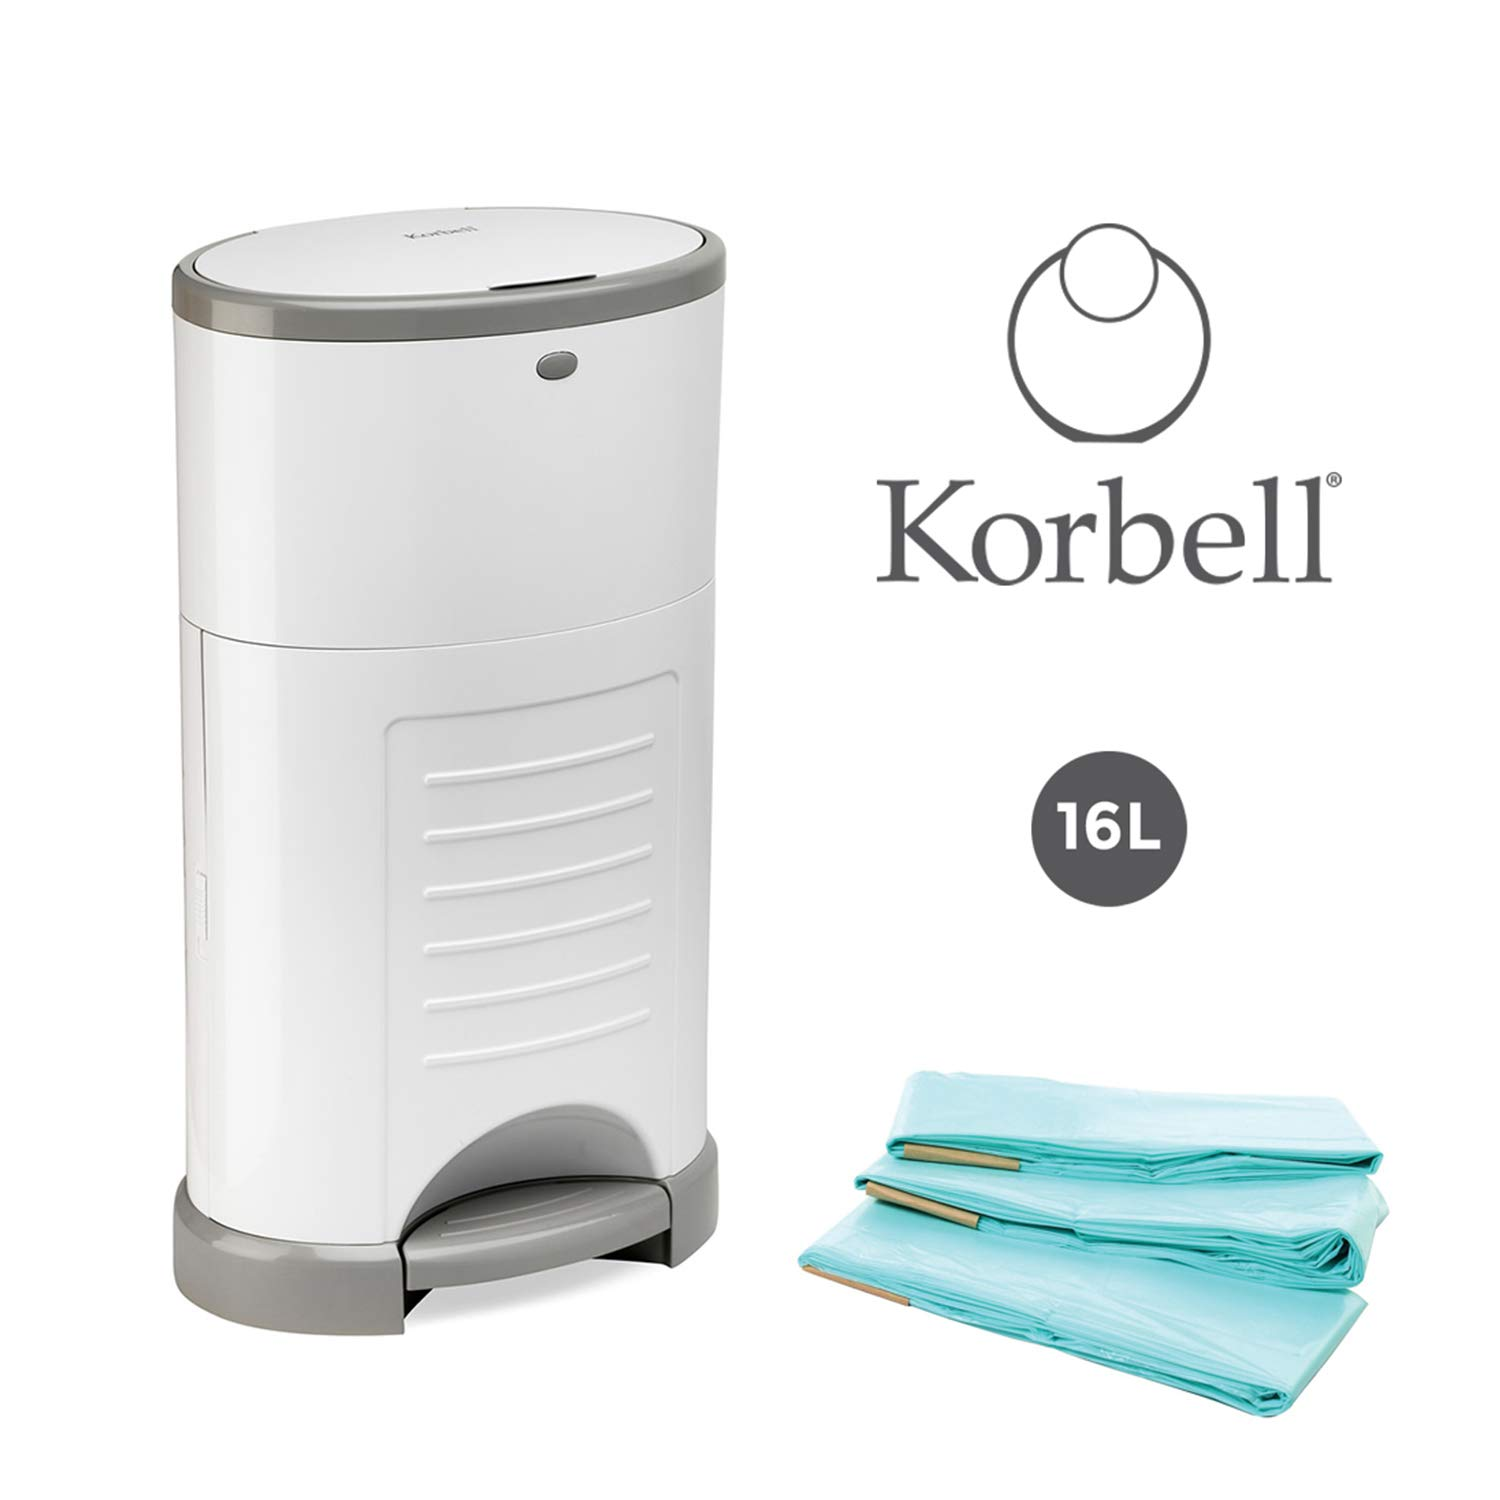 White Bin Hands Free /& Odour Free Includes 4 Packs of Refillable Liners Korbell 16L Nappy Bin /& Liner Bundle